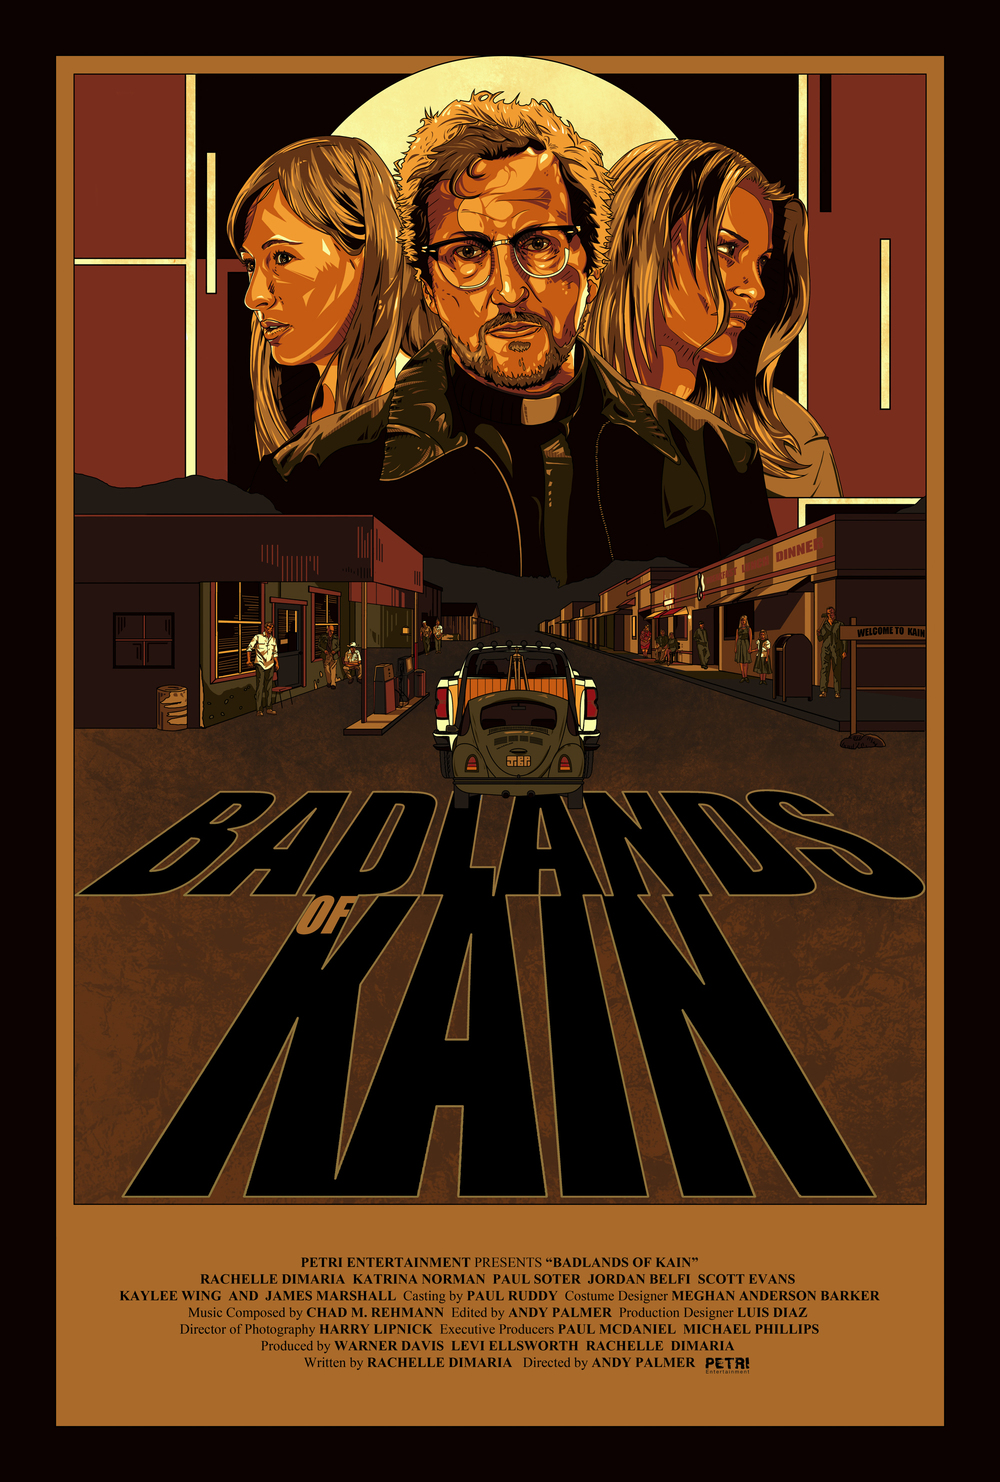 Badlands Of Kain Official Movie Poster - Film and TV - Jonathan B Perez - cREAtive Castle Studios.jpg